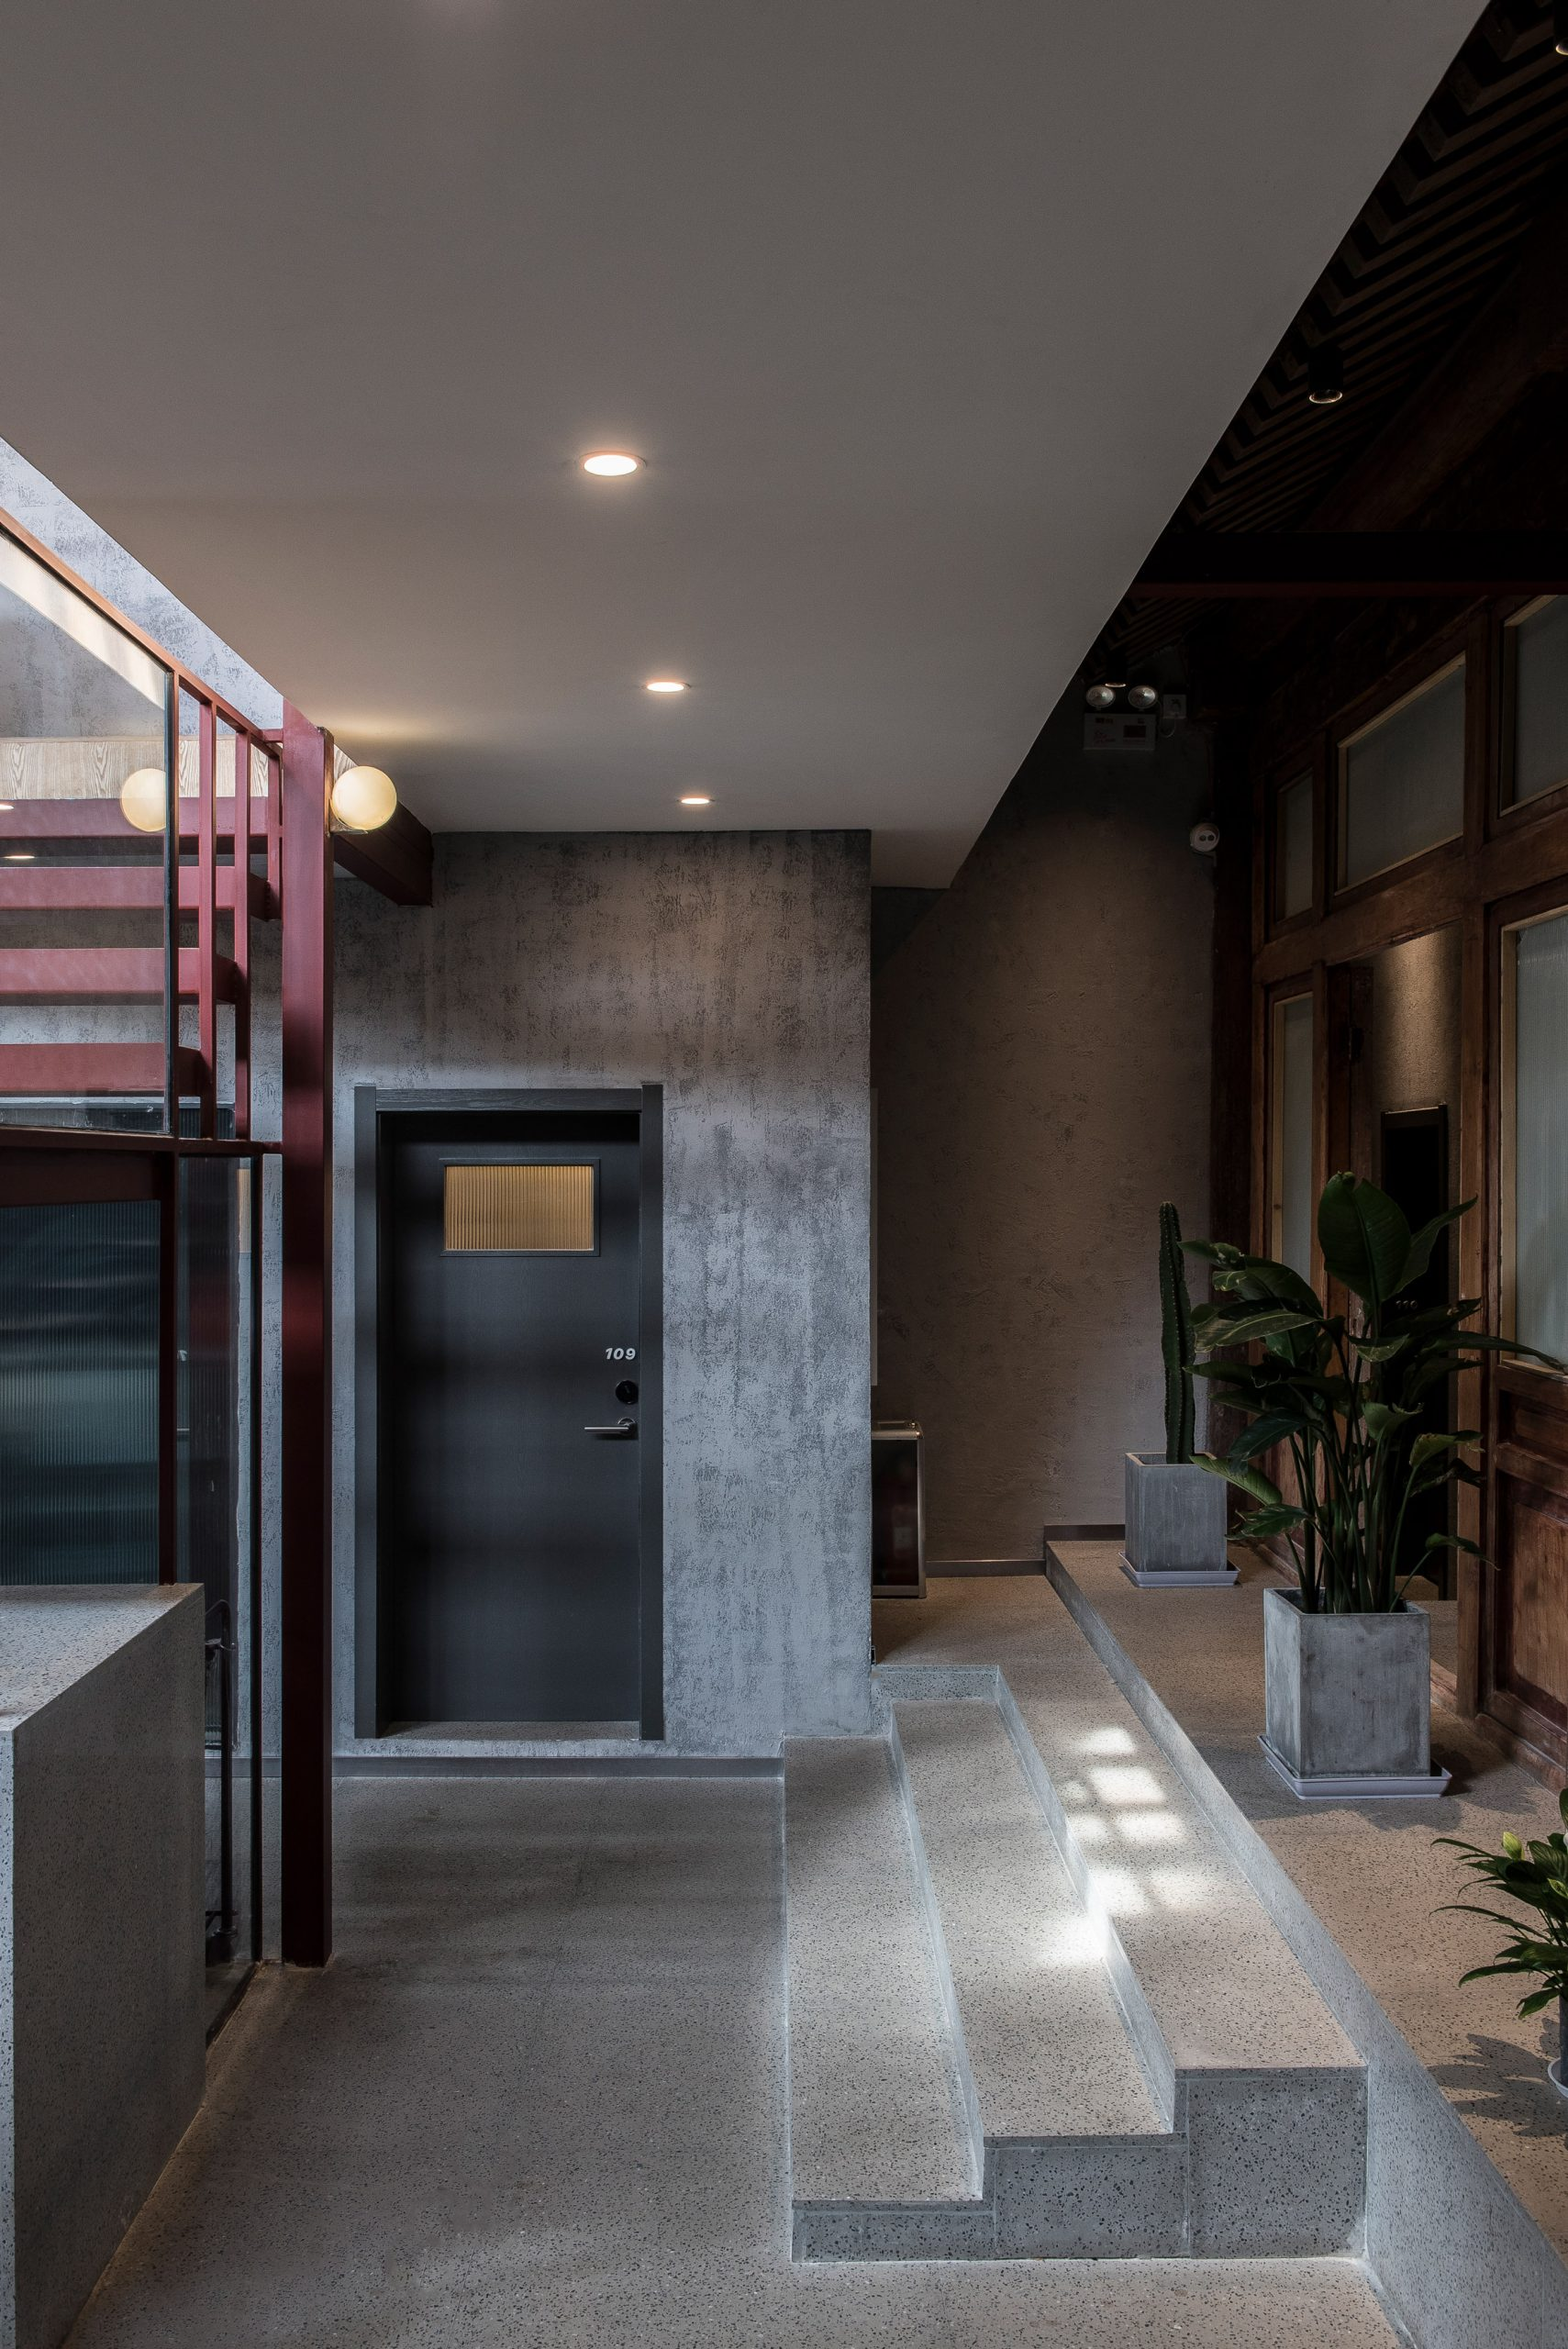 Concrete stairs to guest rooms in Well Well Well Hotel